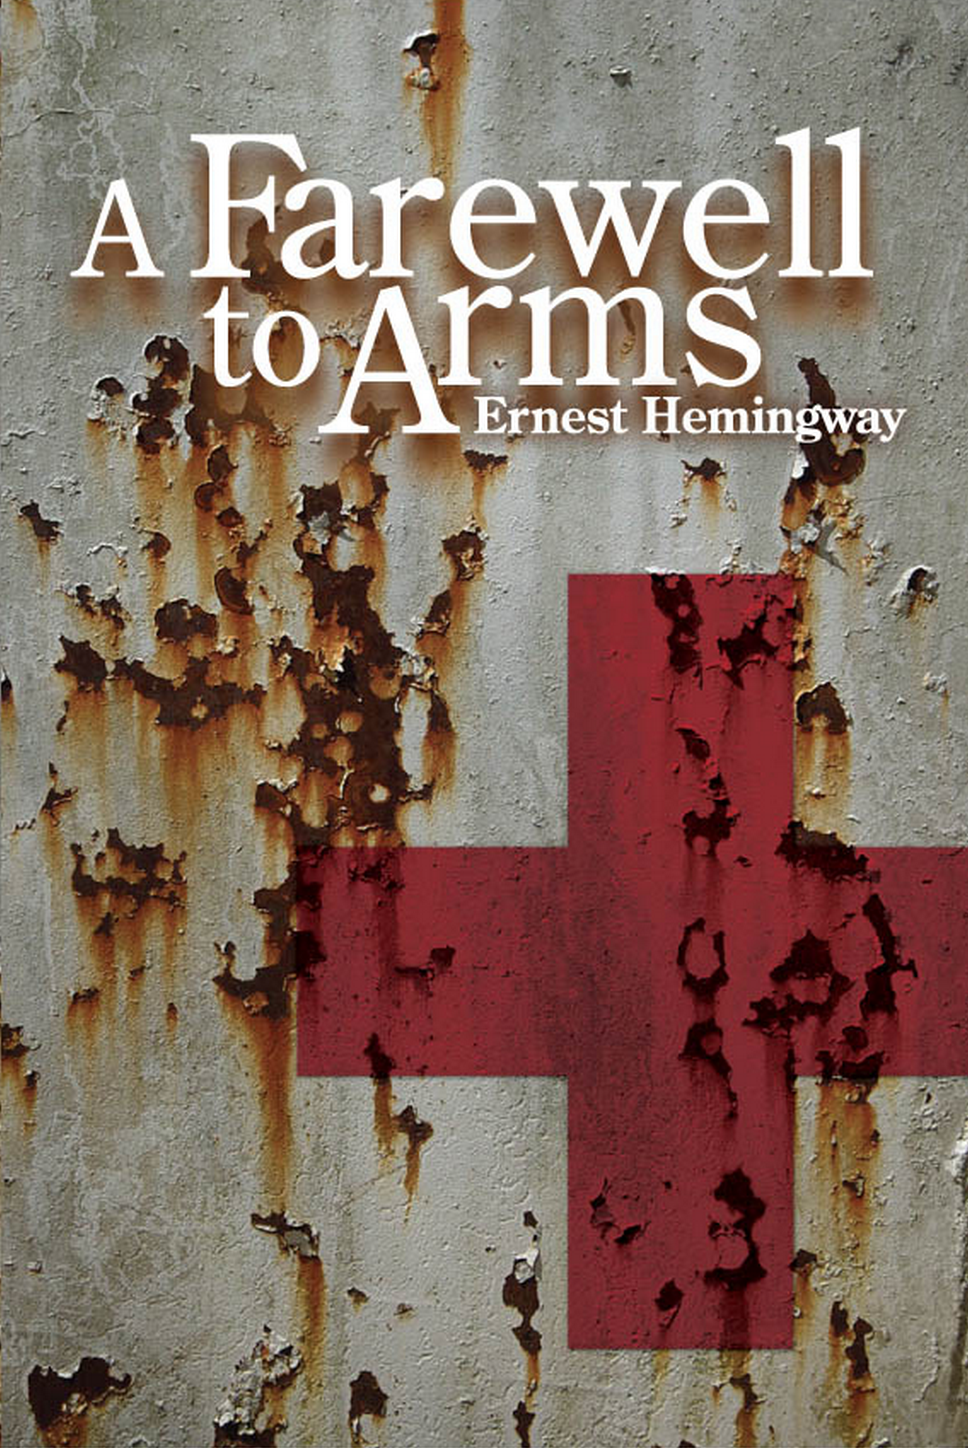 essential and irresistible r tic novels qwiklit ernest hemingway a farewell to arms screen shot 2015 02 14 at 3 38 02 pm